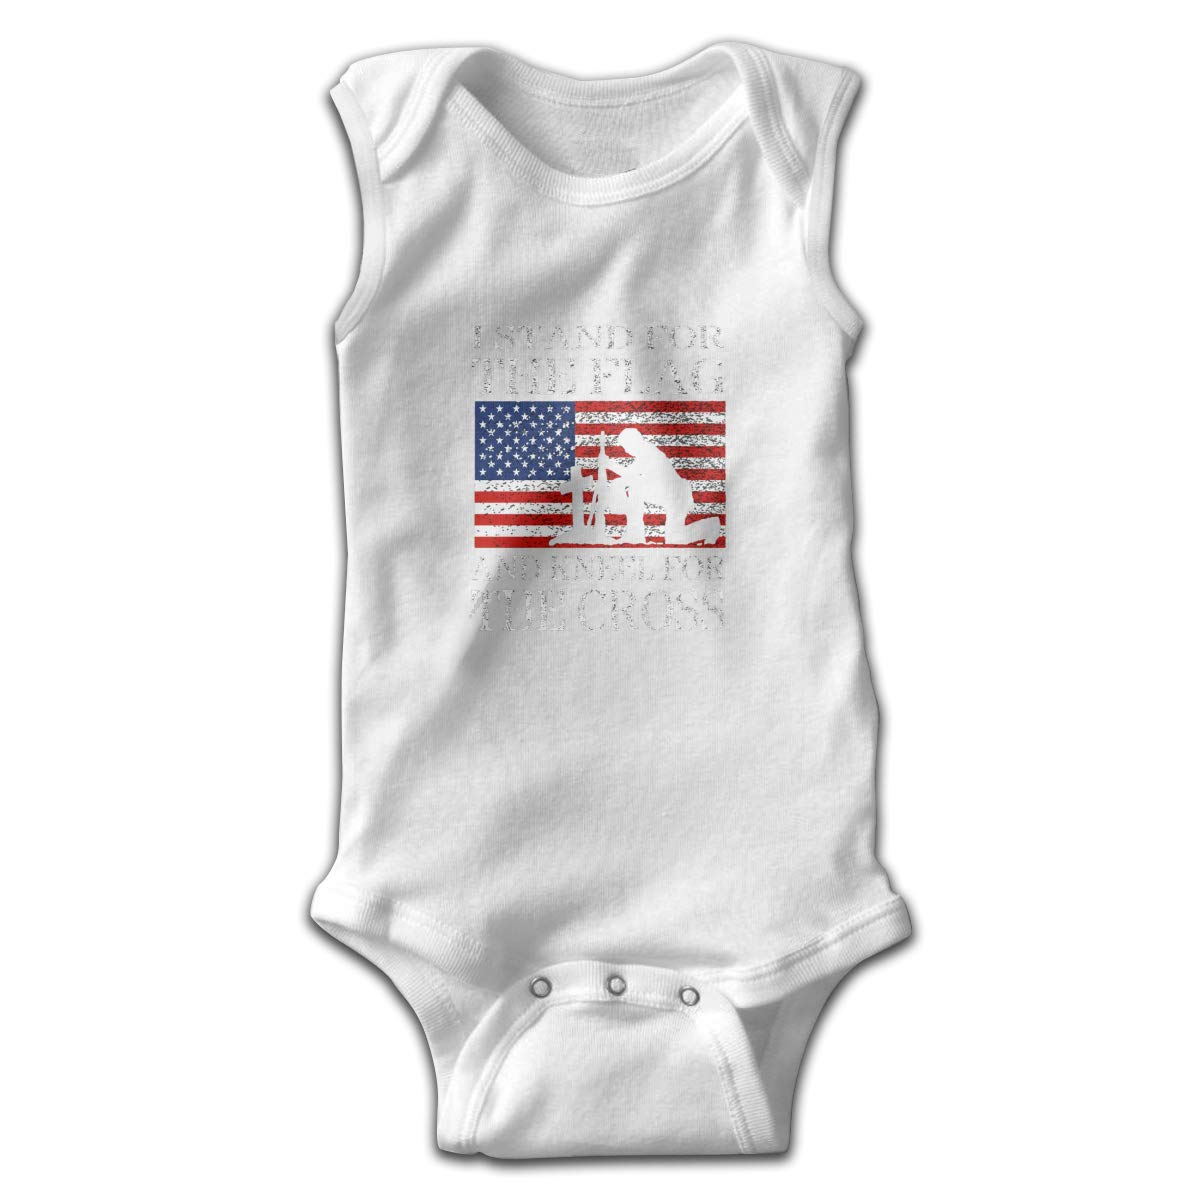 I Stand for The Flag and Kneel for The Cross Smalls Baby Onesie,Infant Bodysuit Black